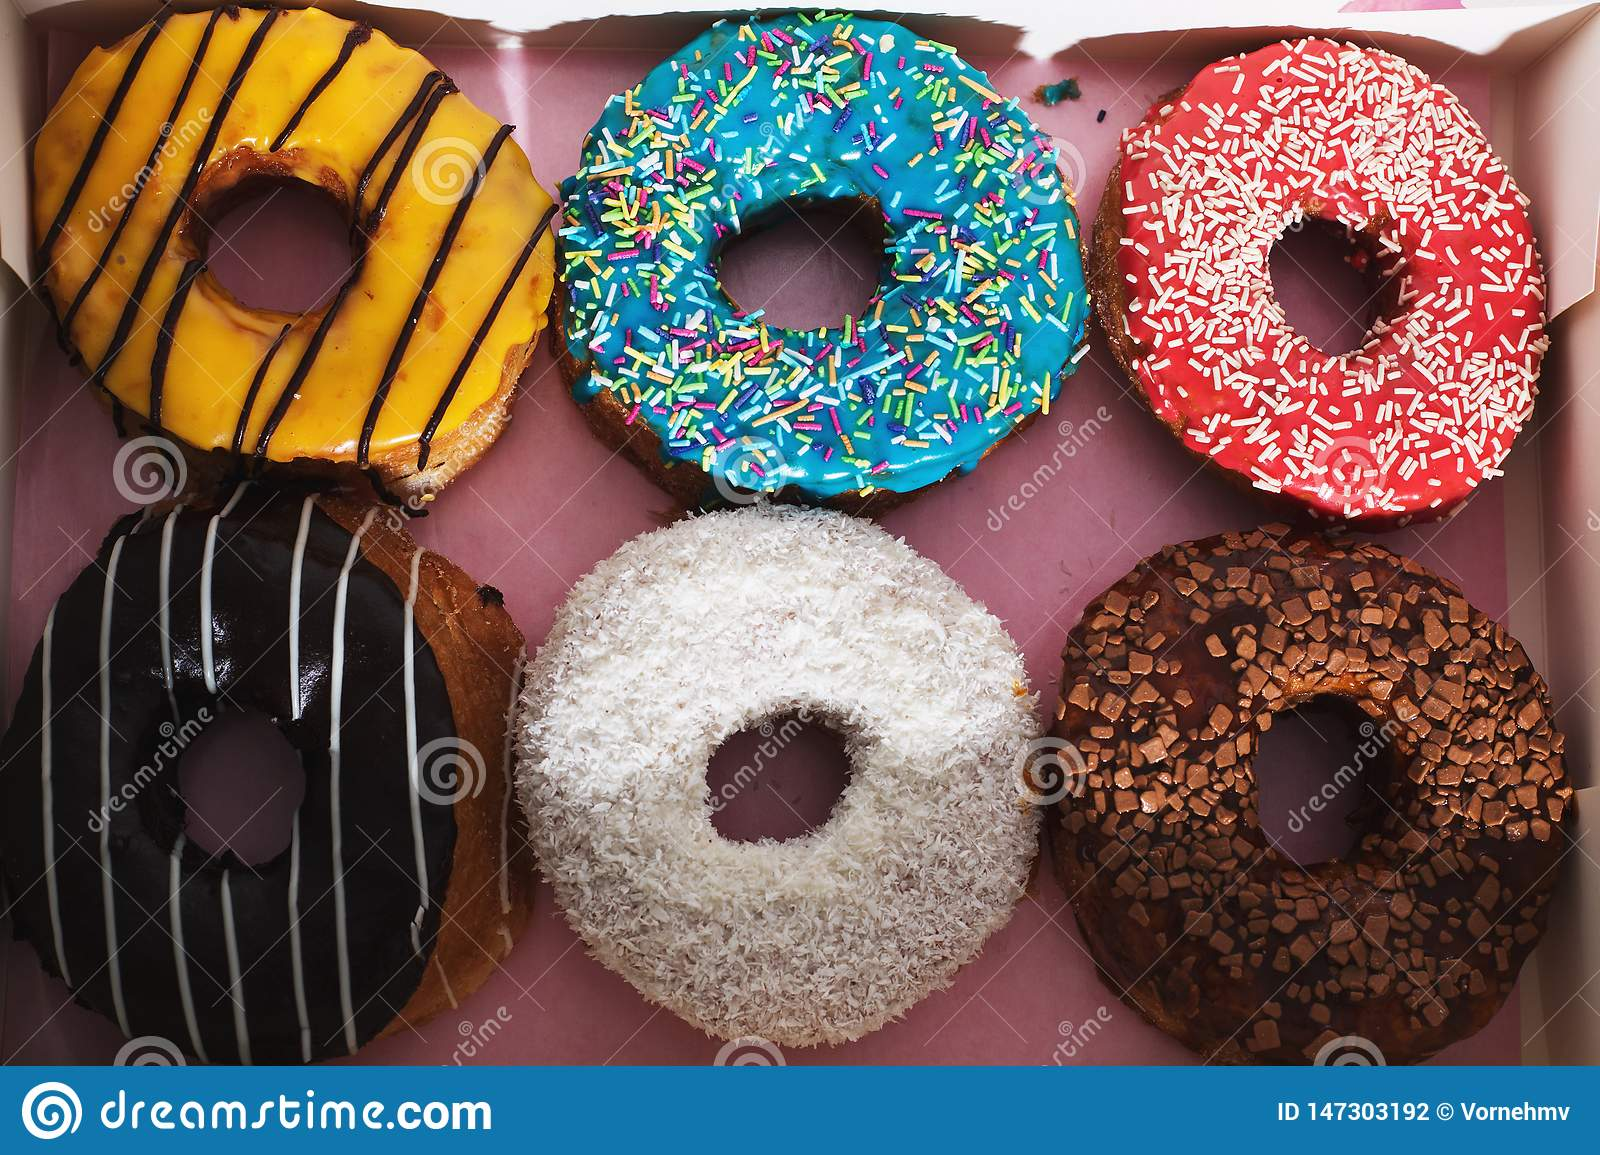 Yellow, blue, red, white and brown donuts with colorful sprinkles in a box next to each other